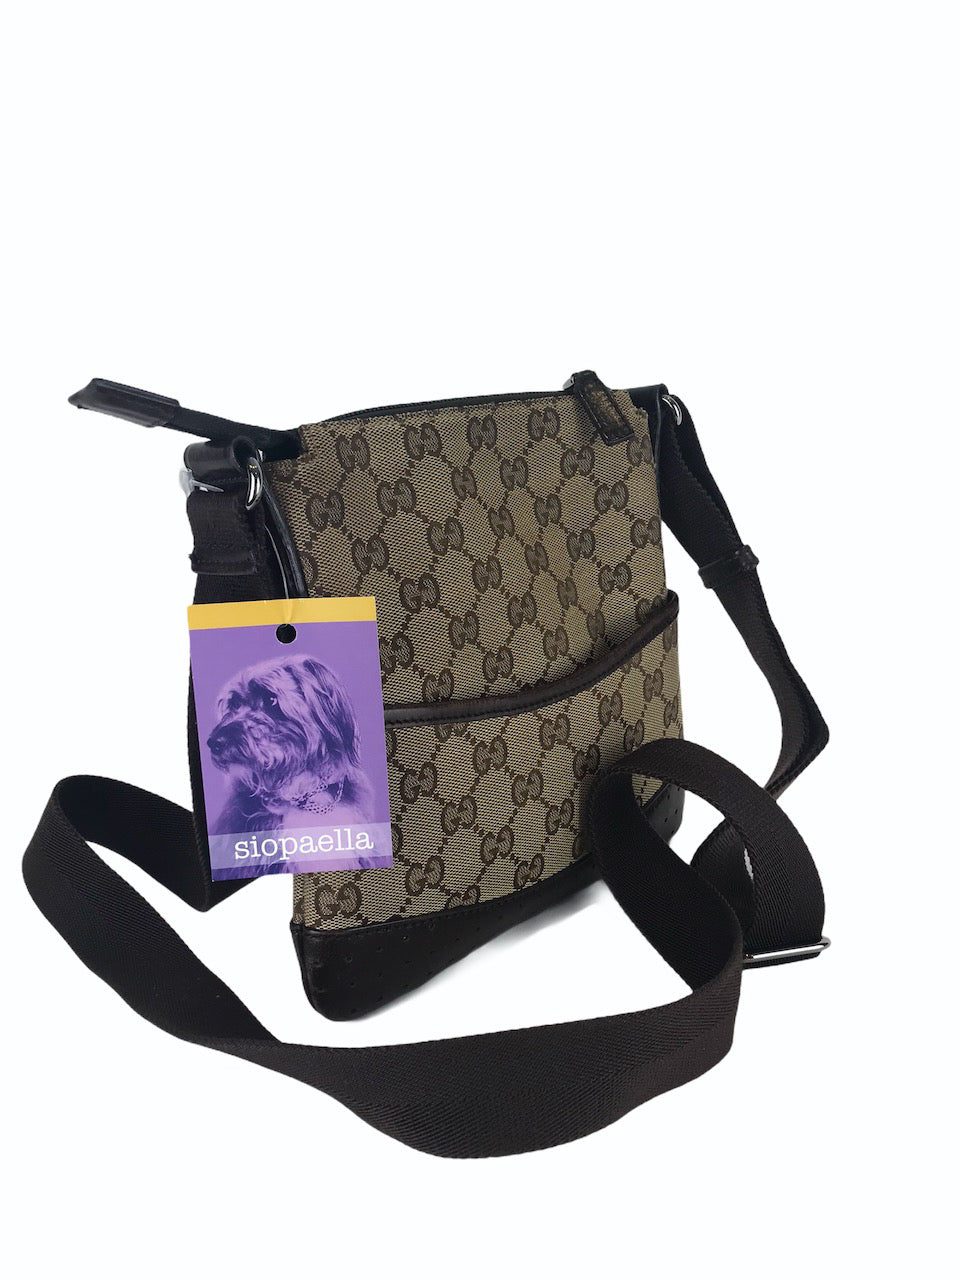 Gucci Small GG Canvas Crossbody - As Seen On Instagram